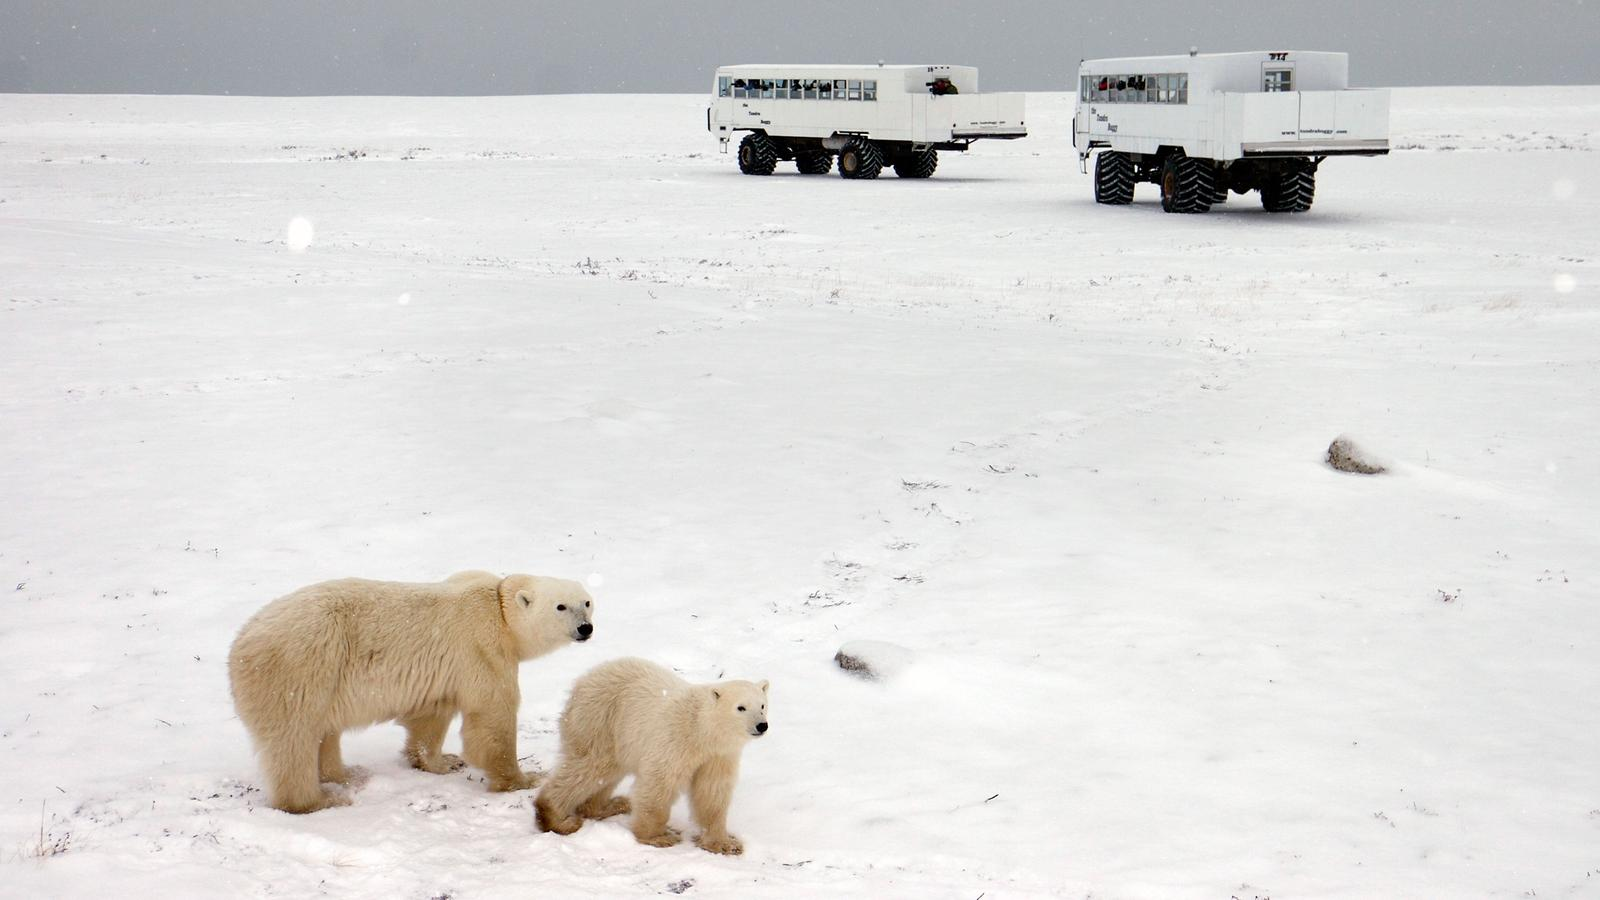 Polar bear and cub walking through a snowy desert while two trucks observe them from a distance, Arctic